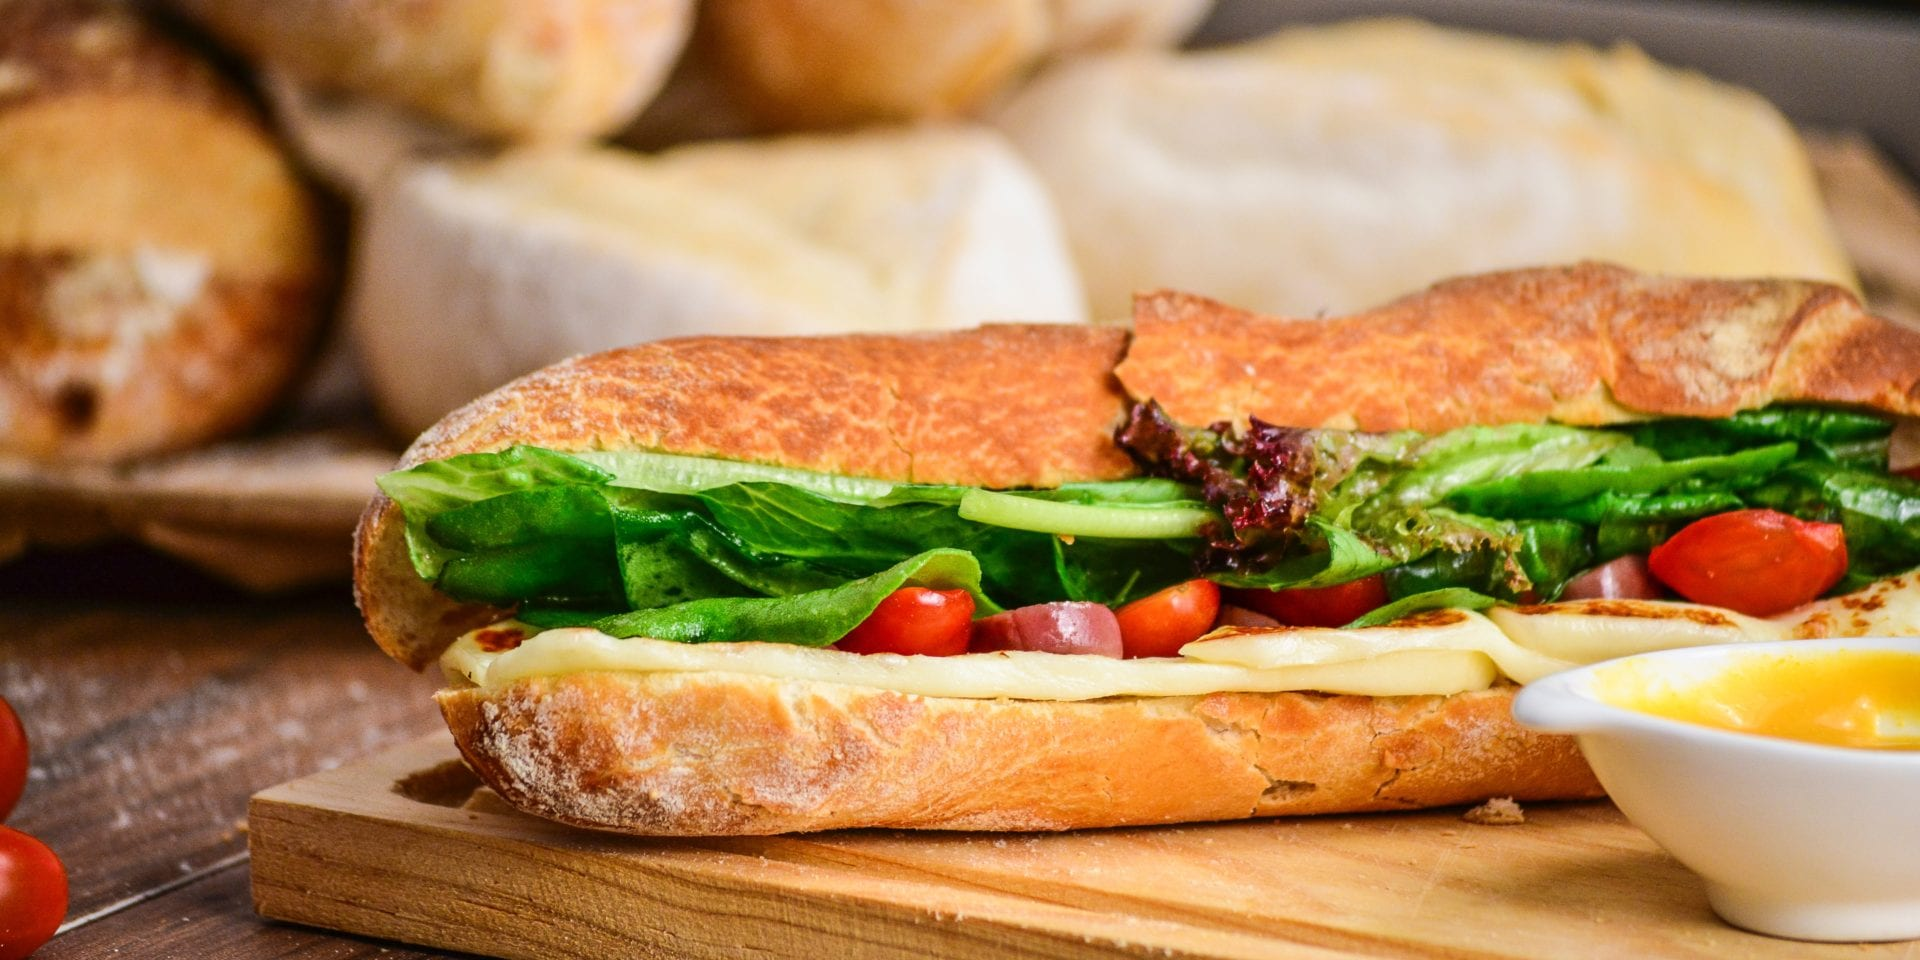 A salad filled baguette on a wooden chopping board – our case study for Adelie Foods careers